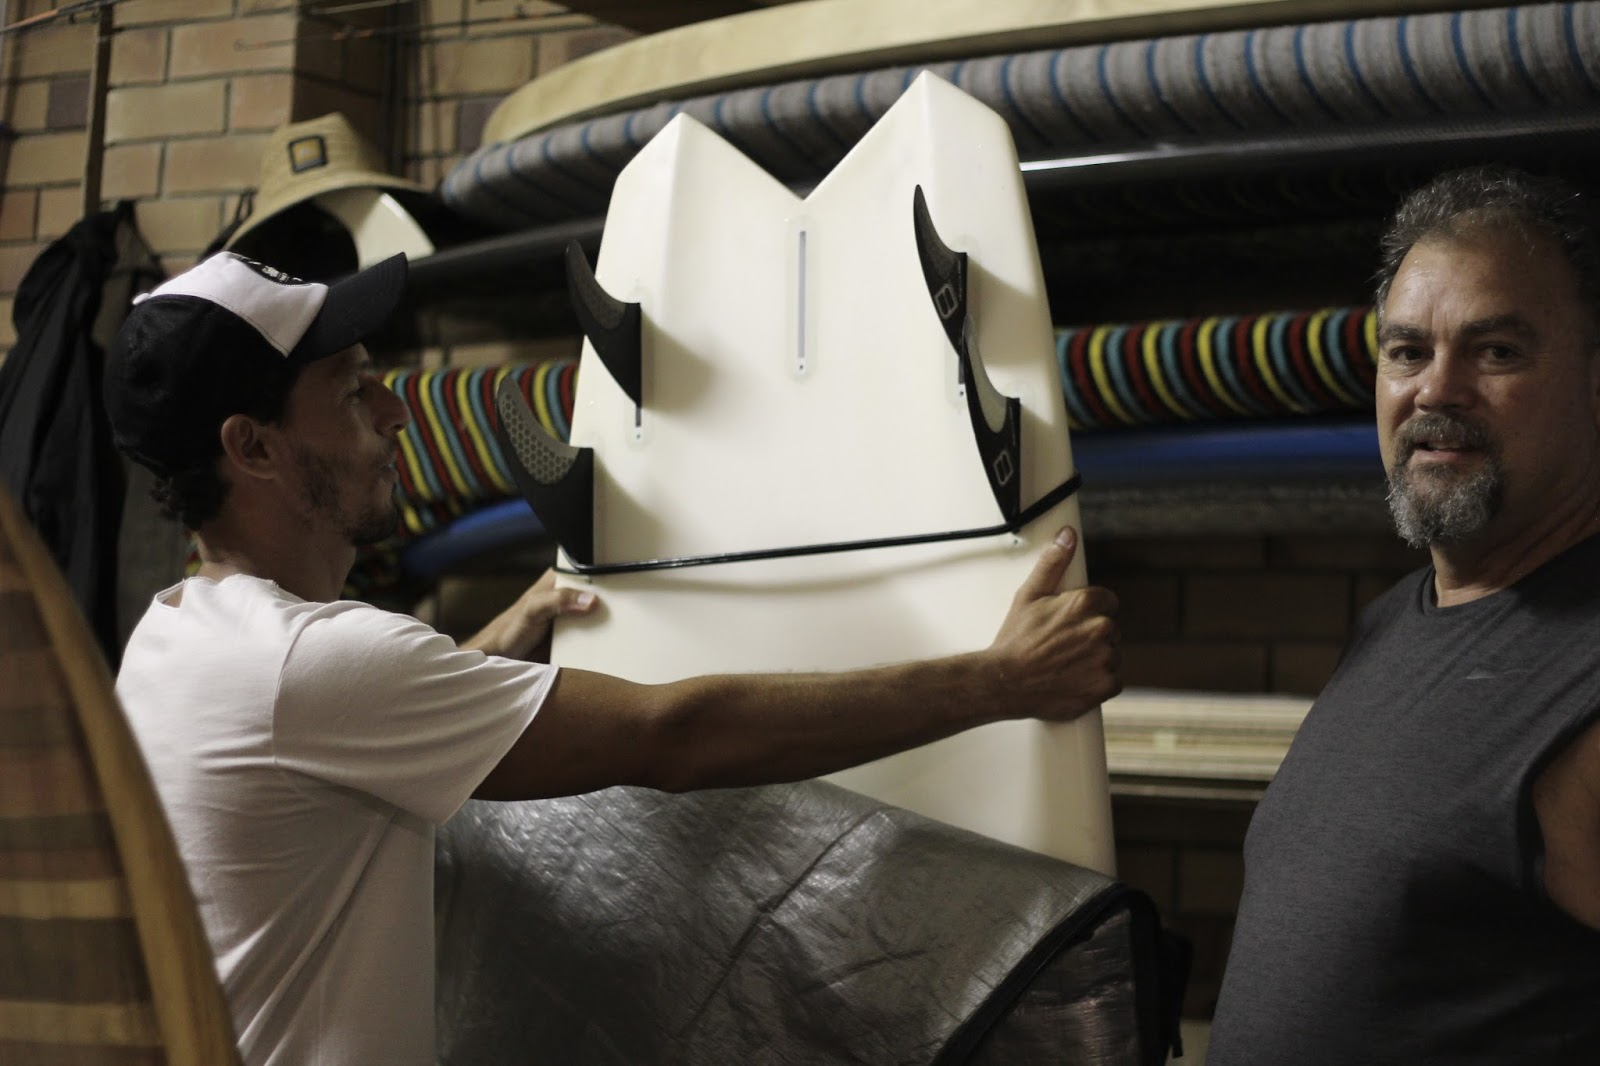 20-03-2016-australia-siebert-surfboards-06